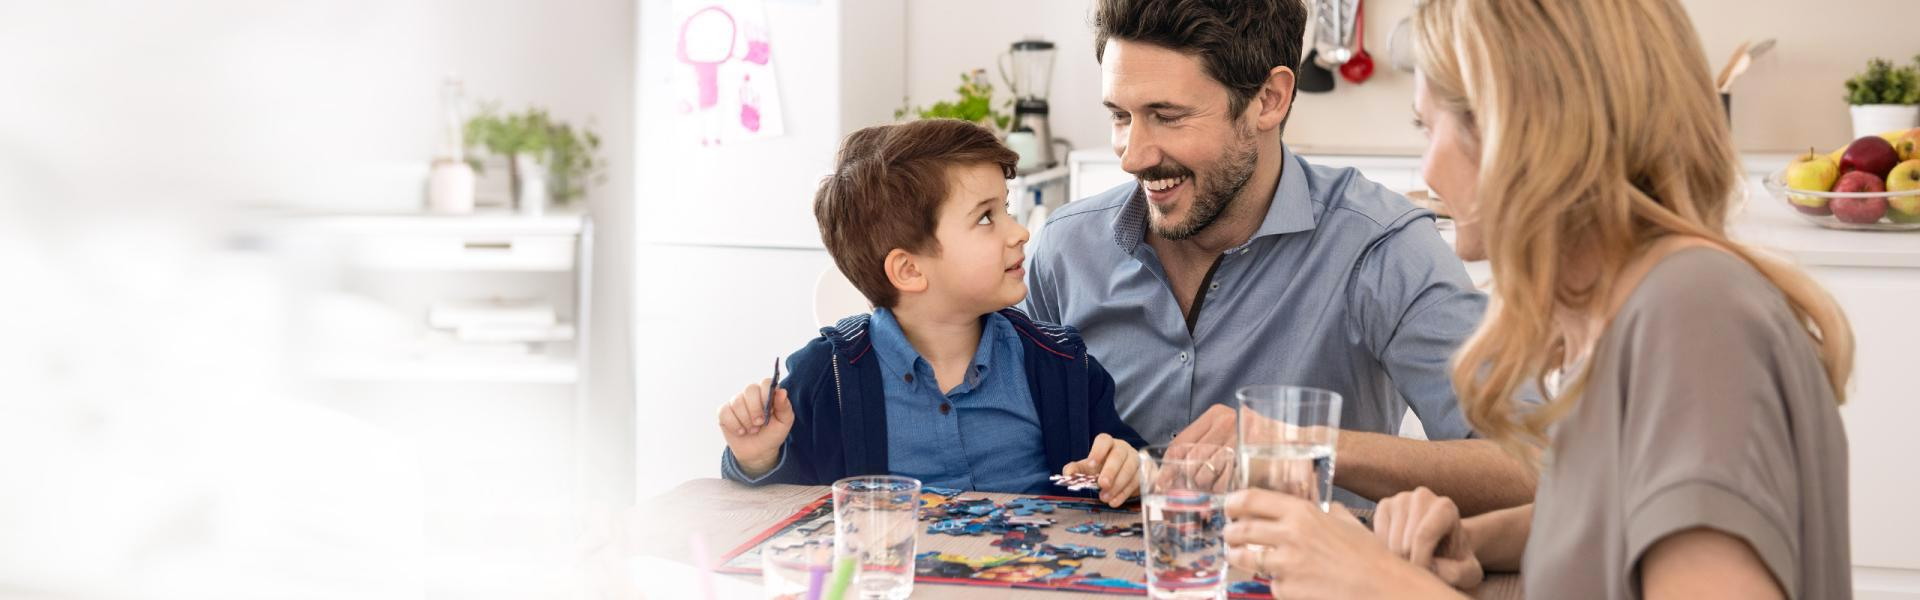 water filter cartridge happy family